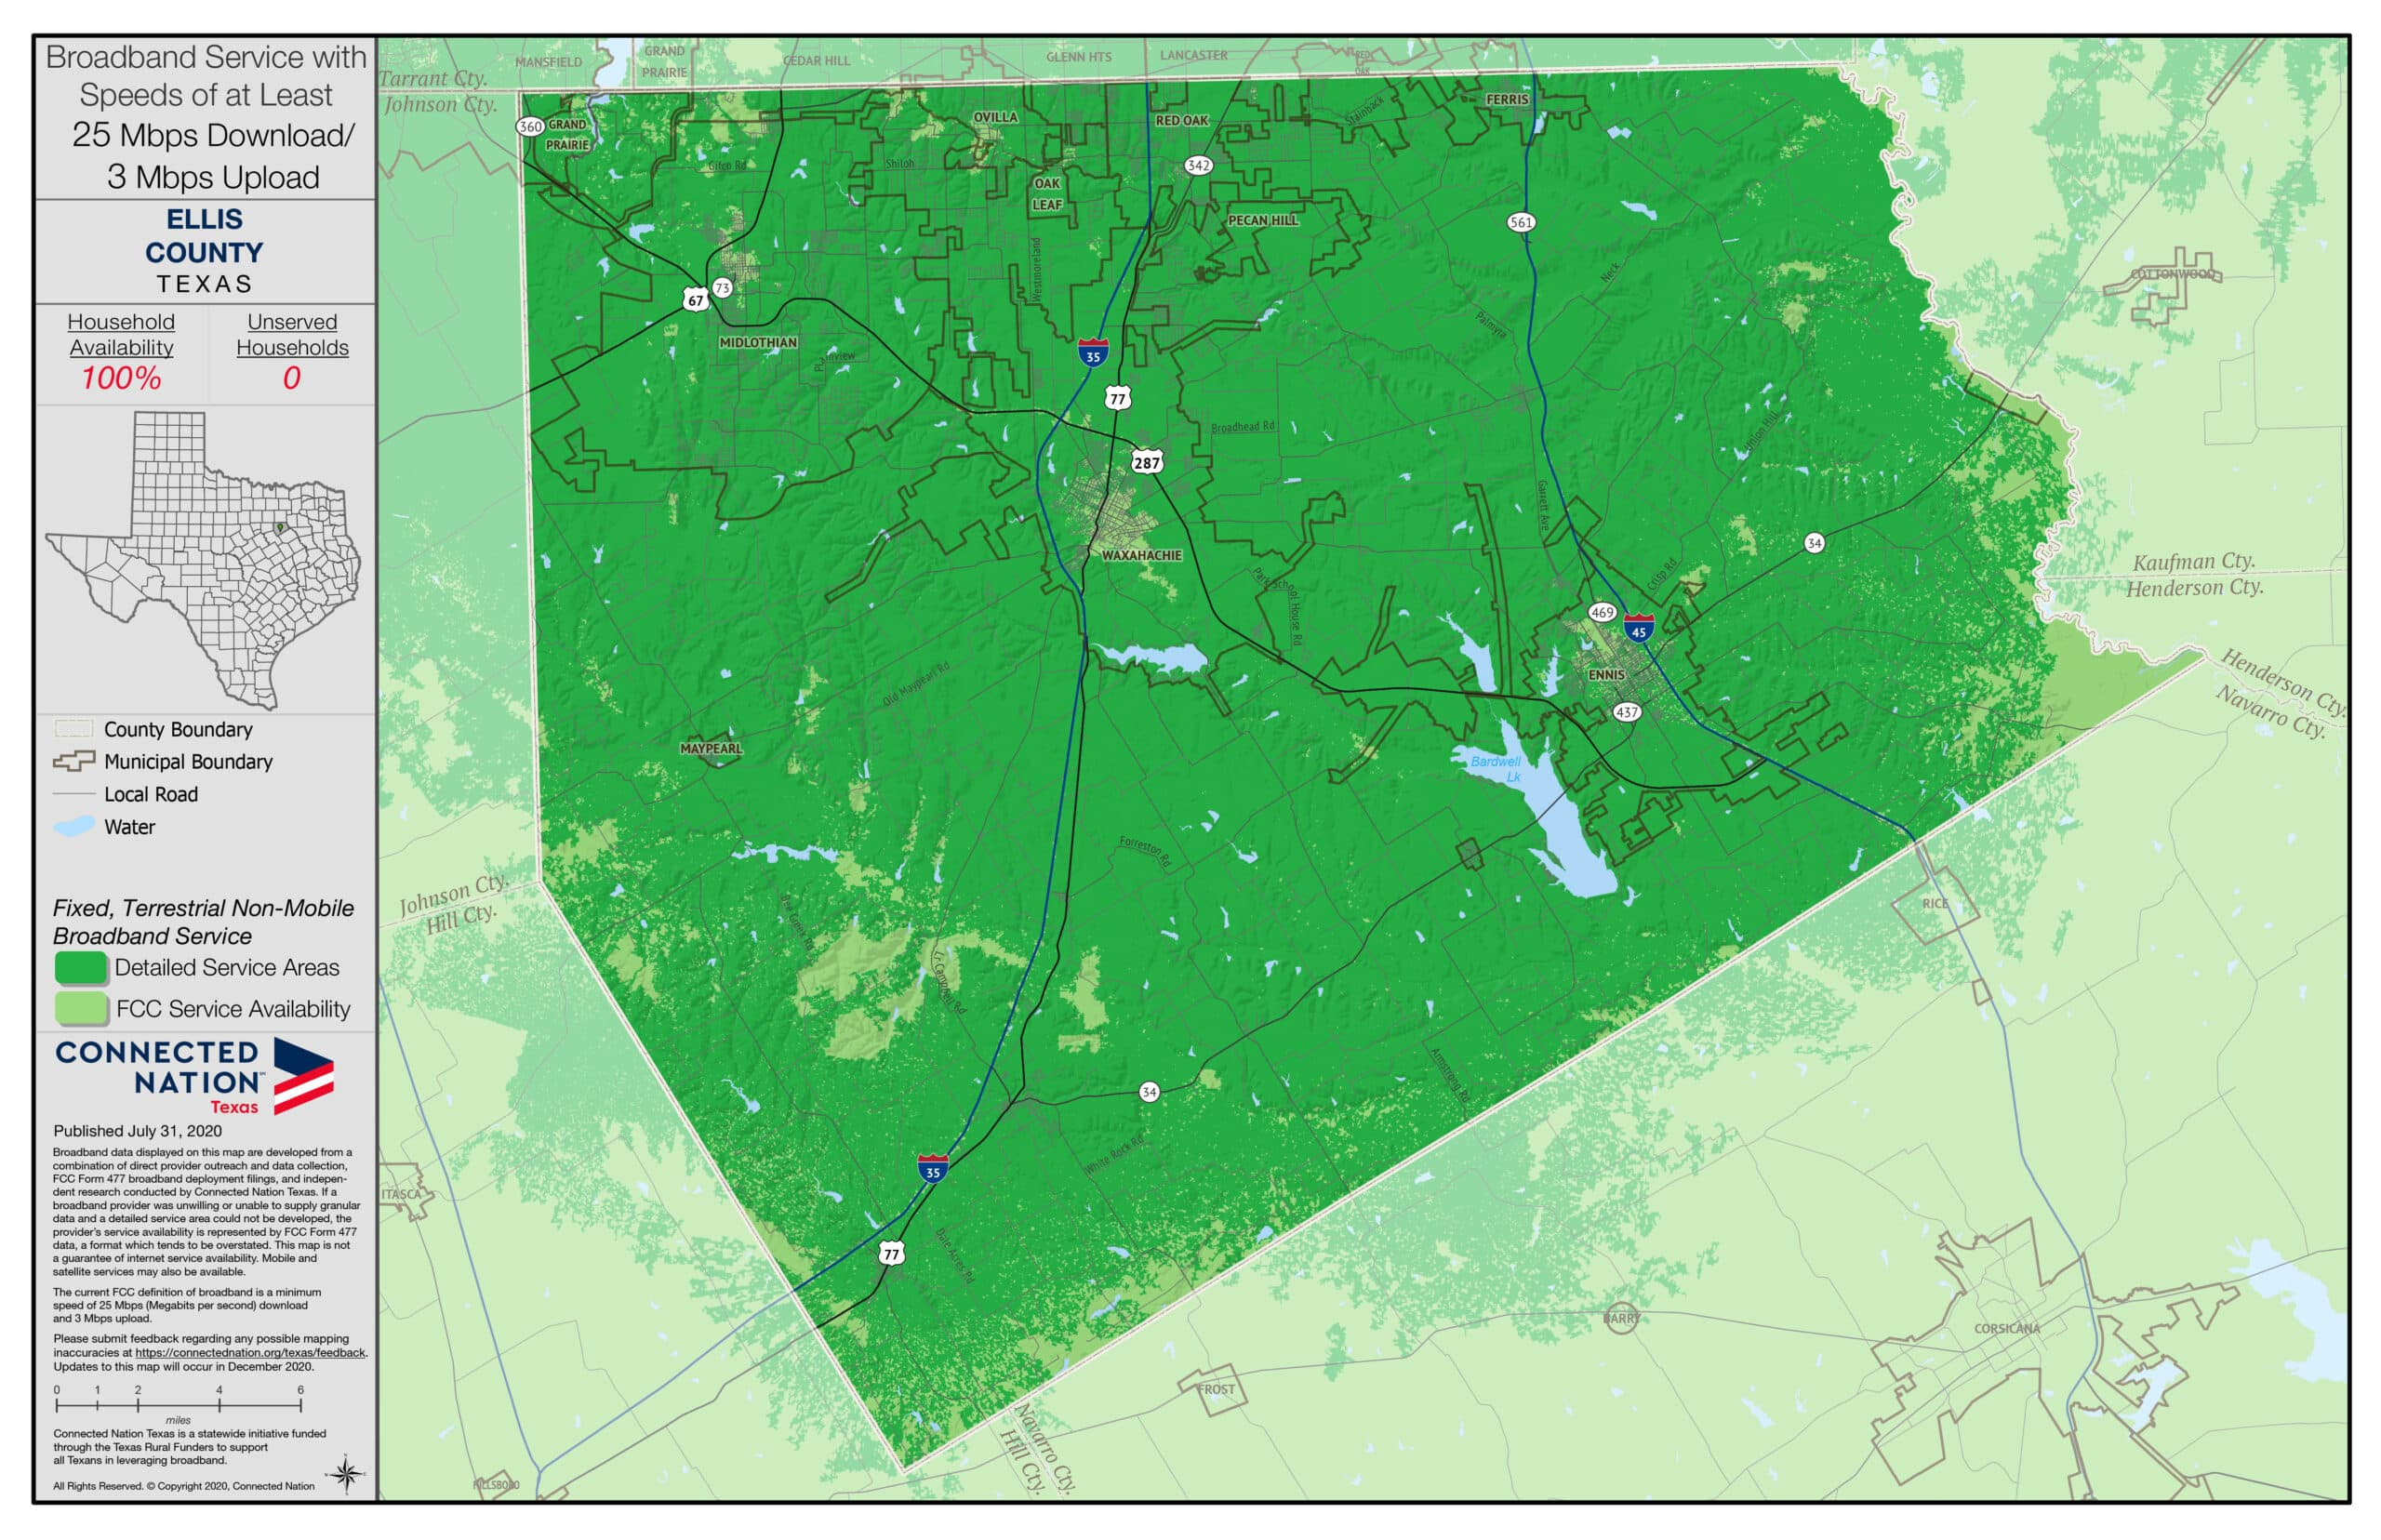 Ellis County broadband map 25 mbps